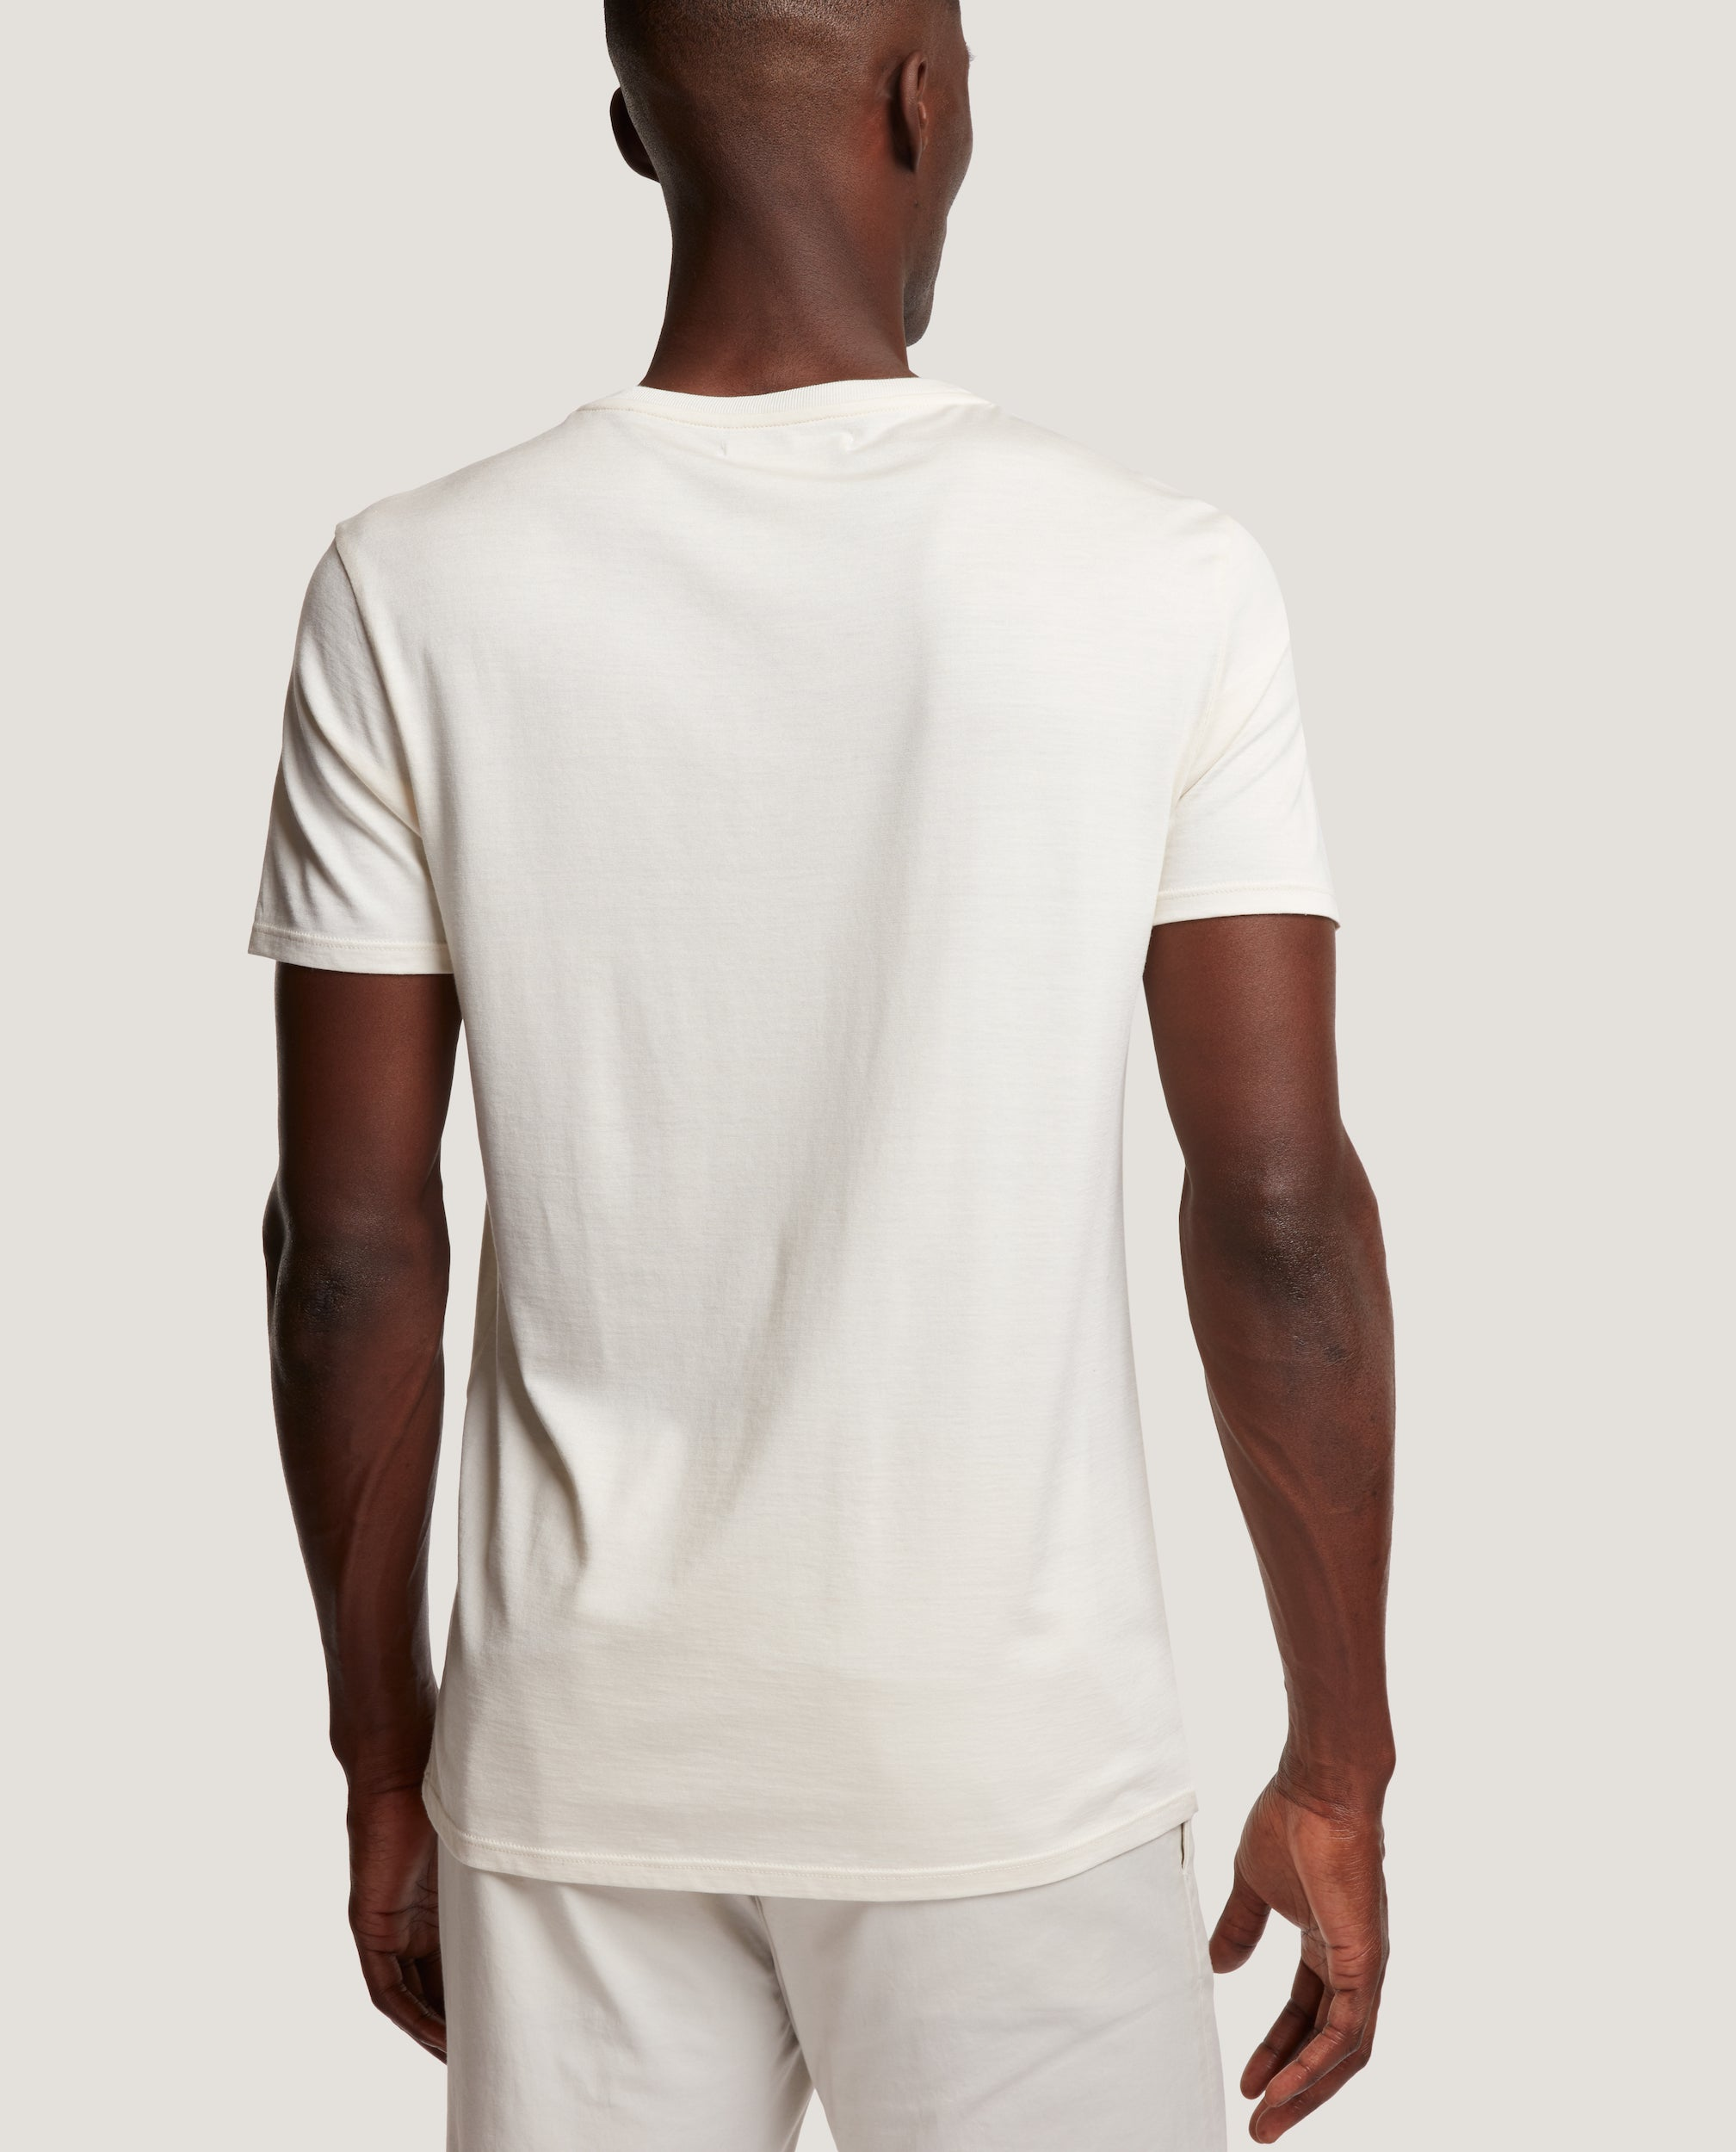 LOTHAR T-shirt | Silk Blend | Natural